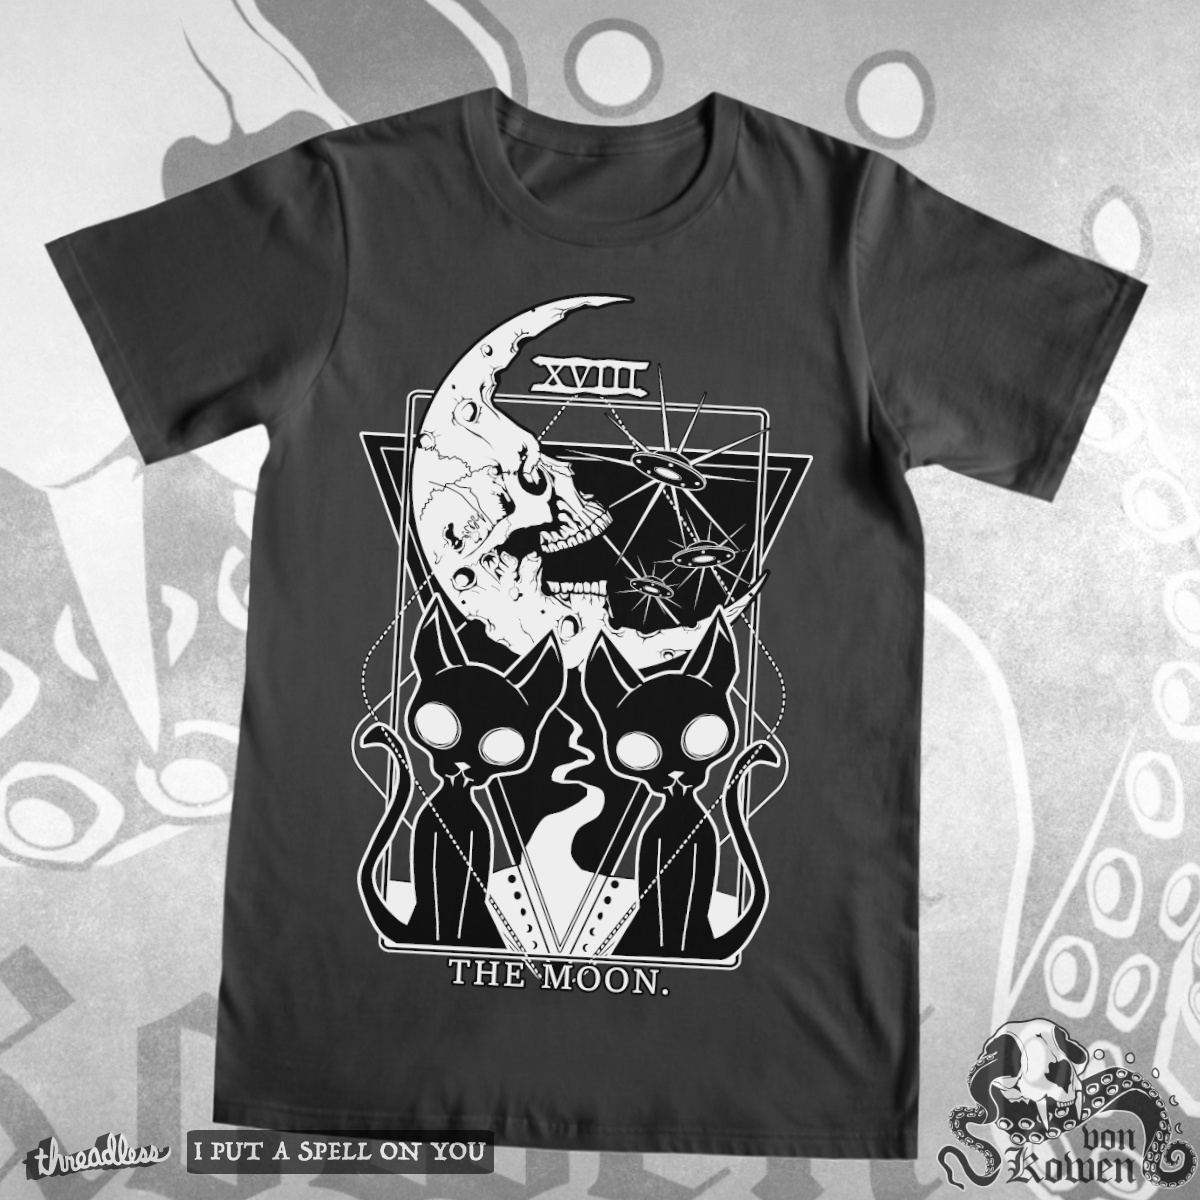 The Moon Tarot card, a cool t-shirt design